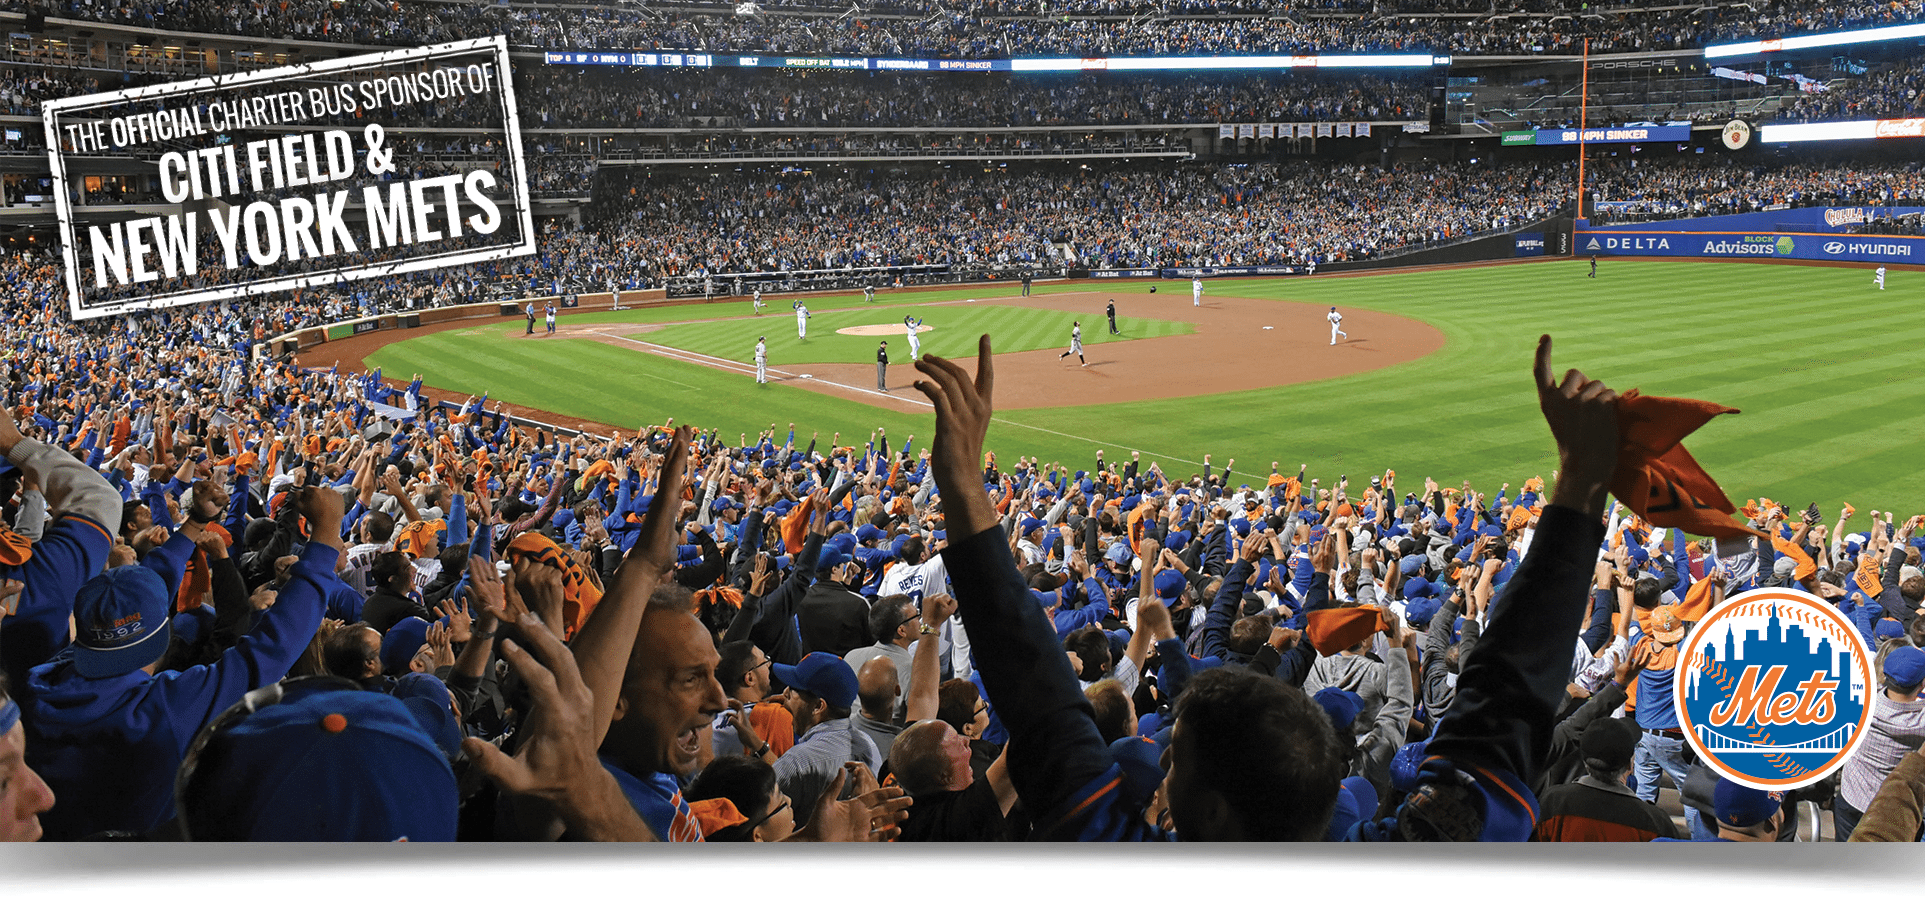 Best Trails & Travel Gets You to All the NY Mets Action at CITI Field